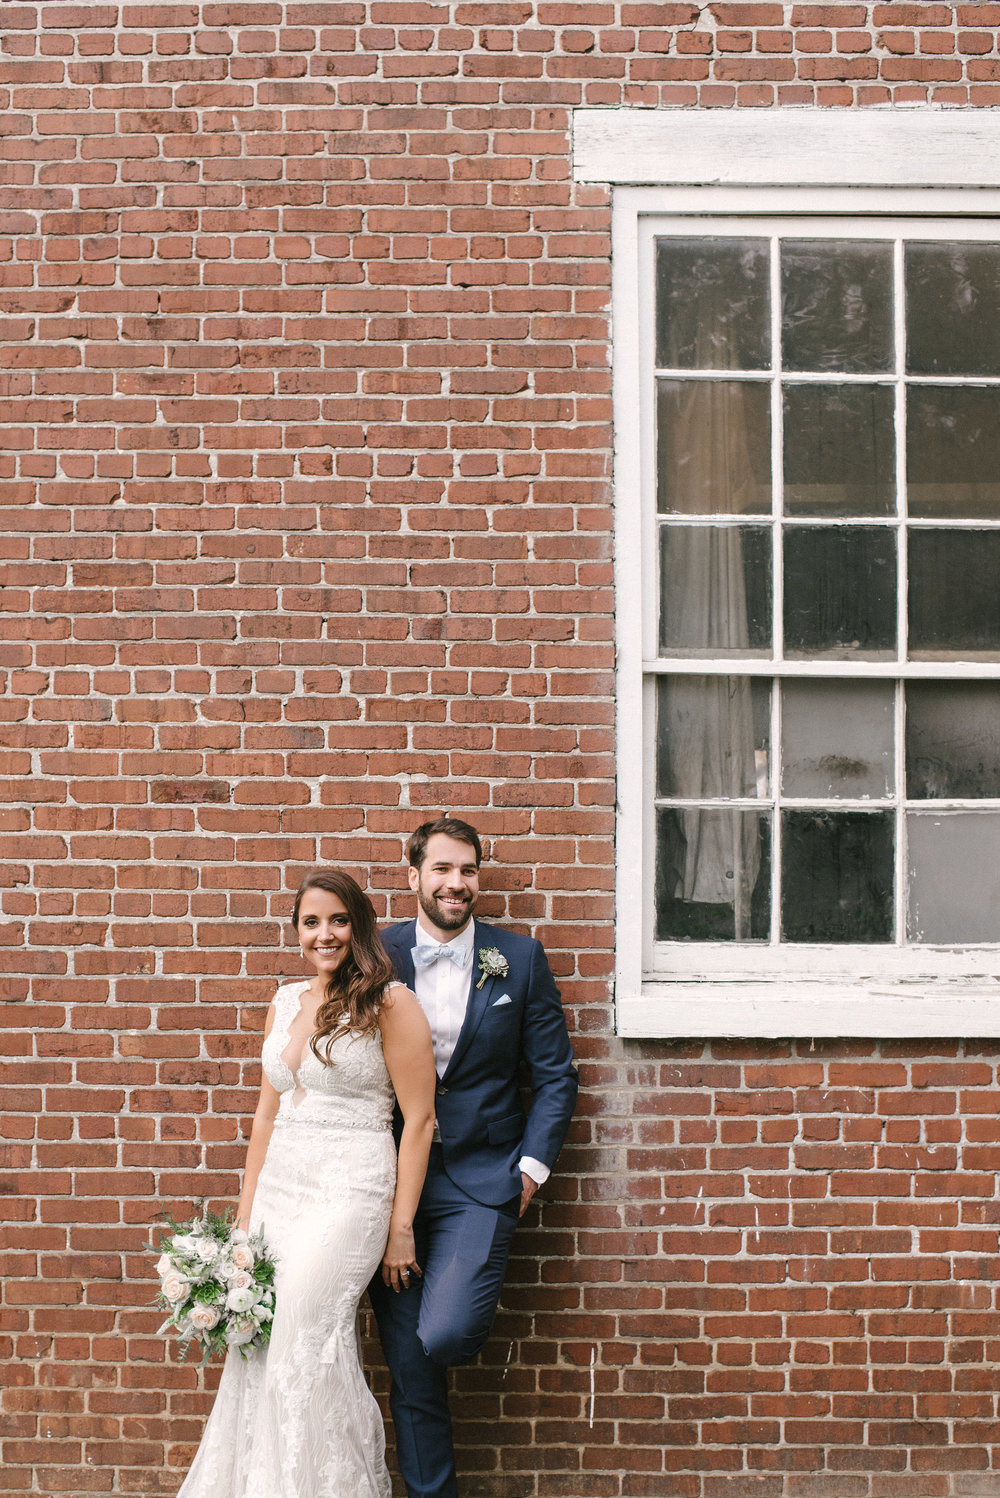 Allison & Matt - The Booking House wedding